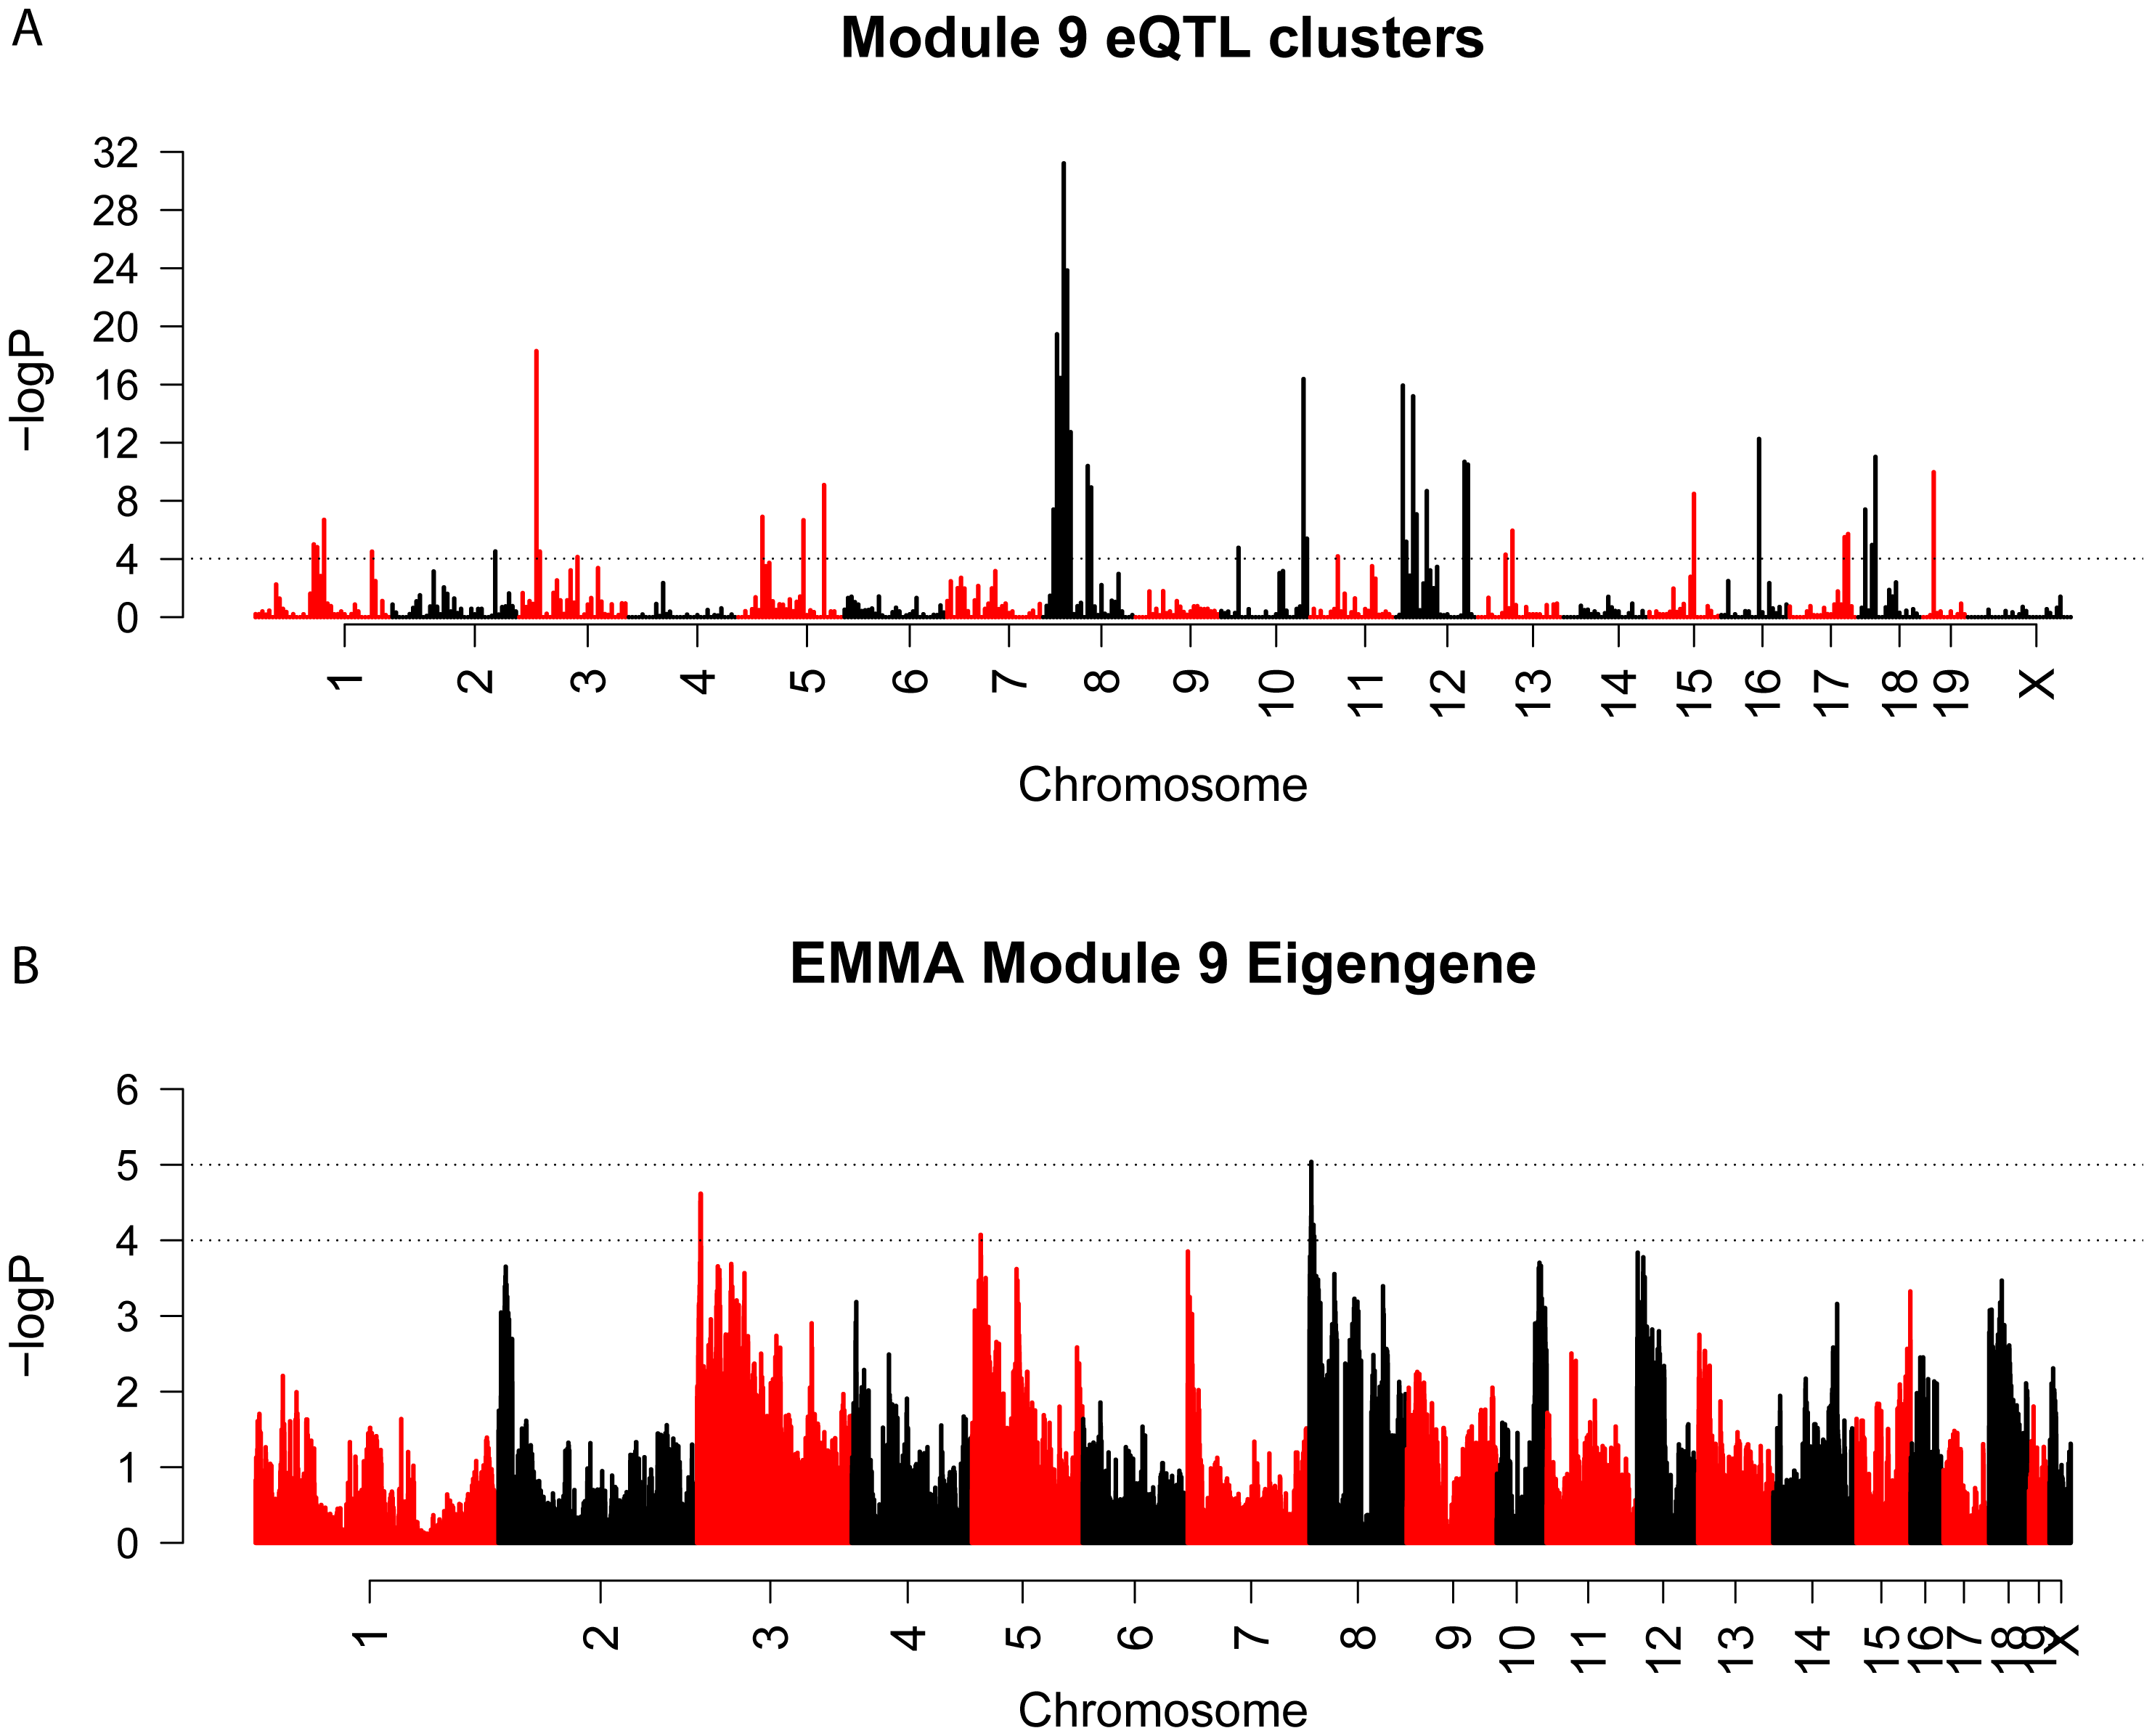 EQTL hotspot identification and genome-wide association identifies a regulator of M9 on Chromosome 8.